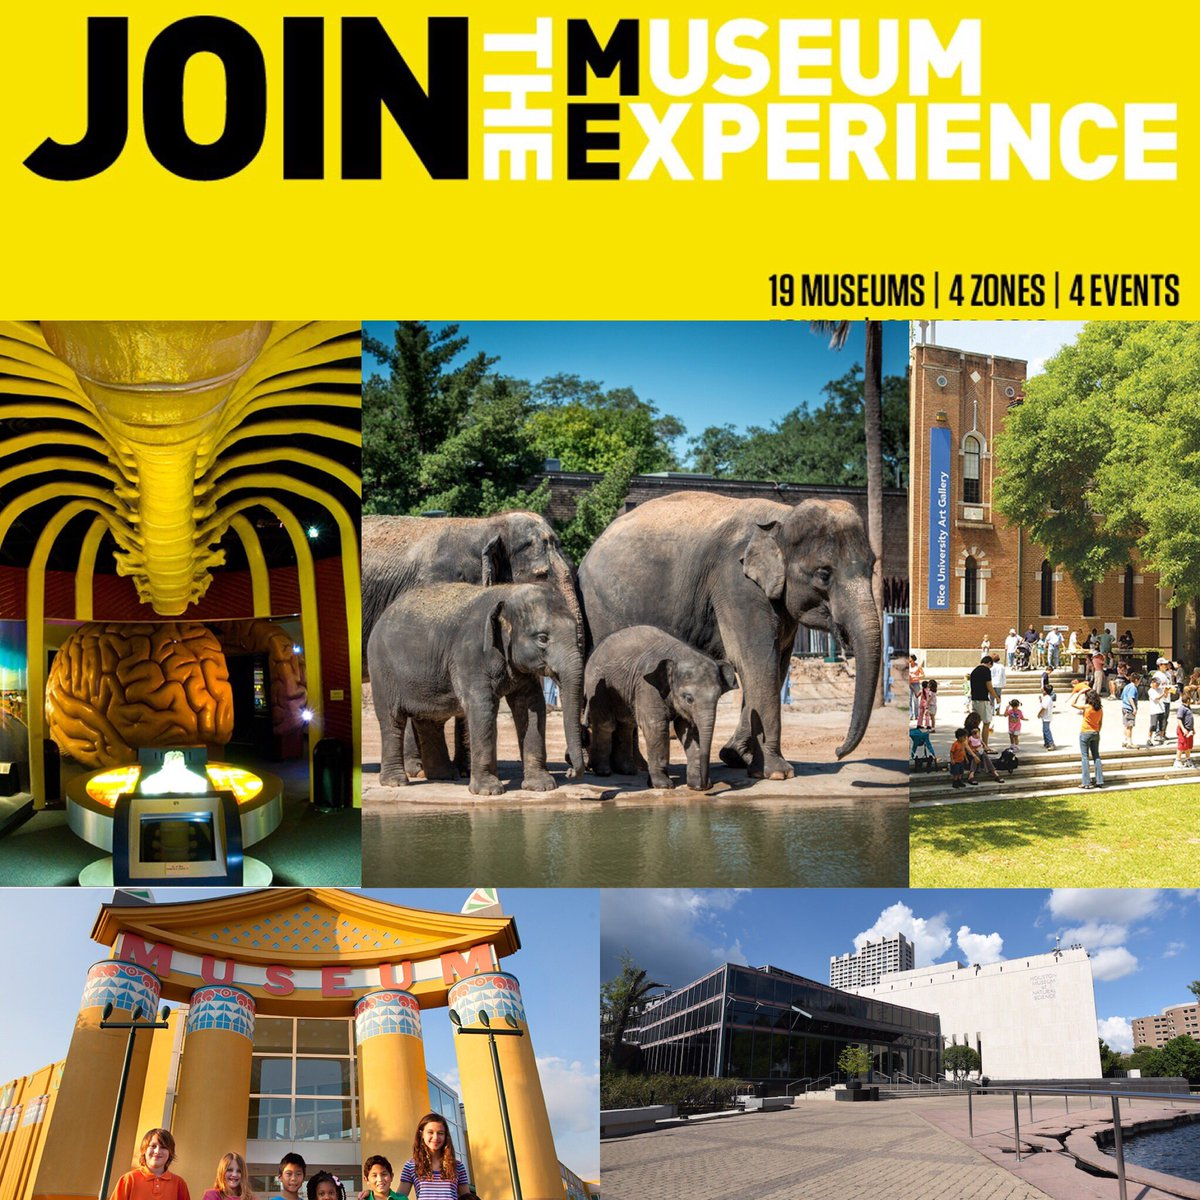 Museum Experience Day is this Saturday, Sept 24 at @cmhouston, @thehealthmuseum, @hmns, @houstonzoo and @RiceGallery https://t.co/66HWMXDmax